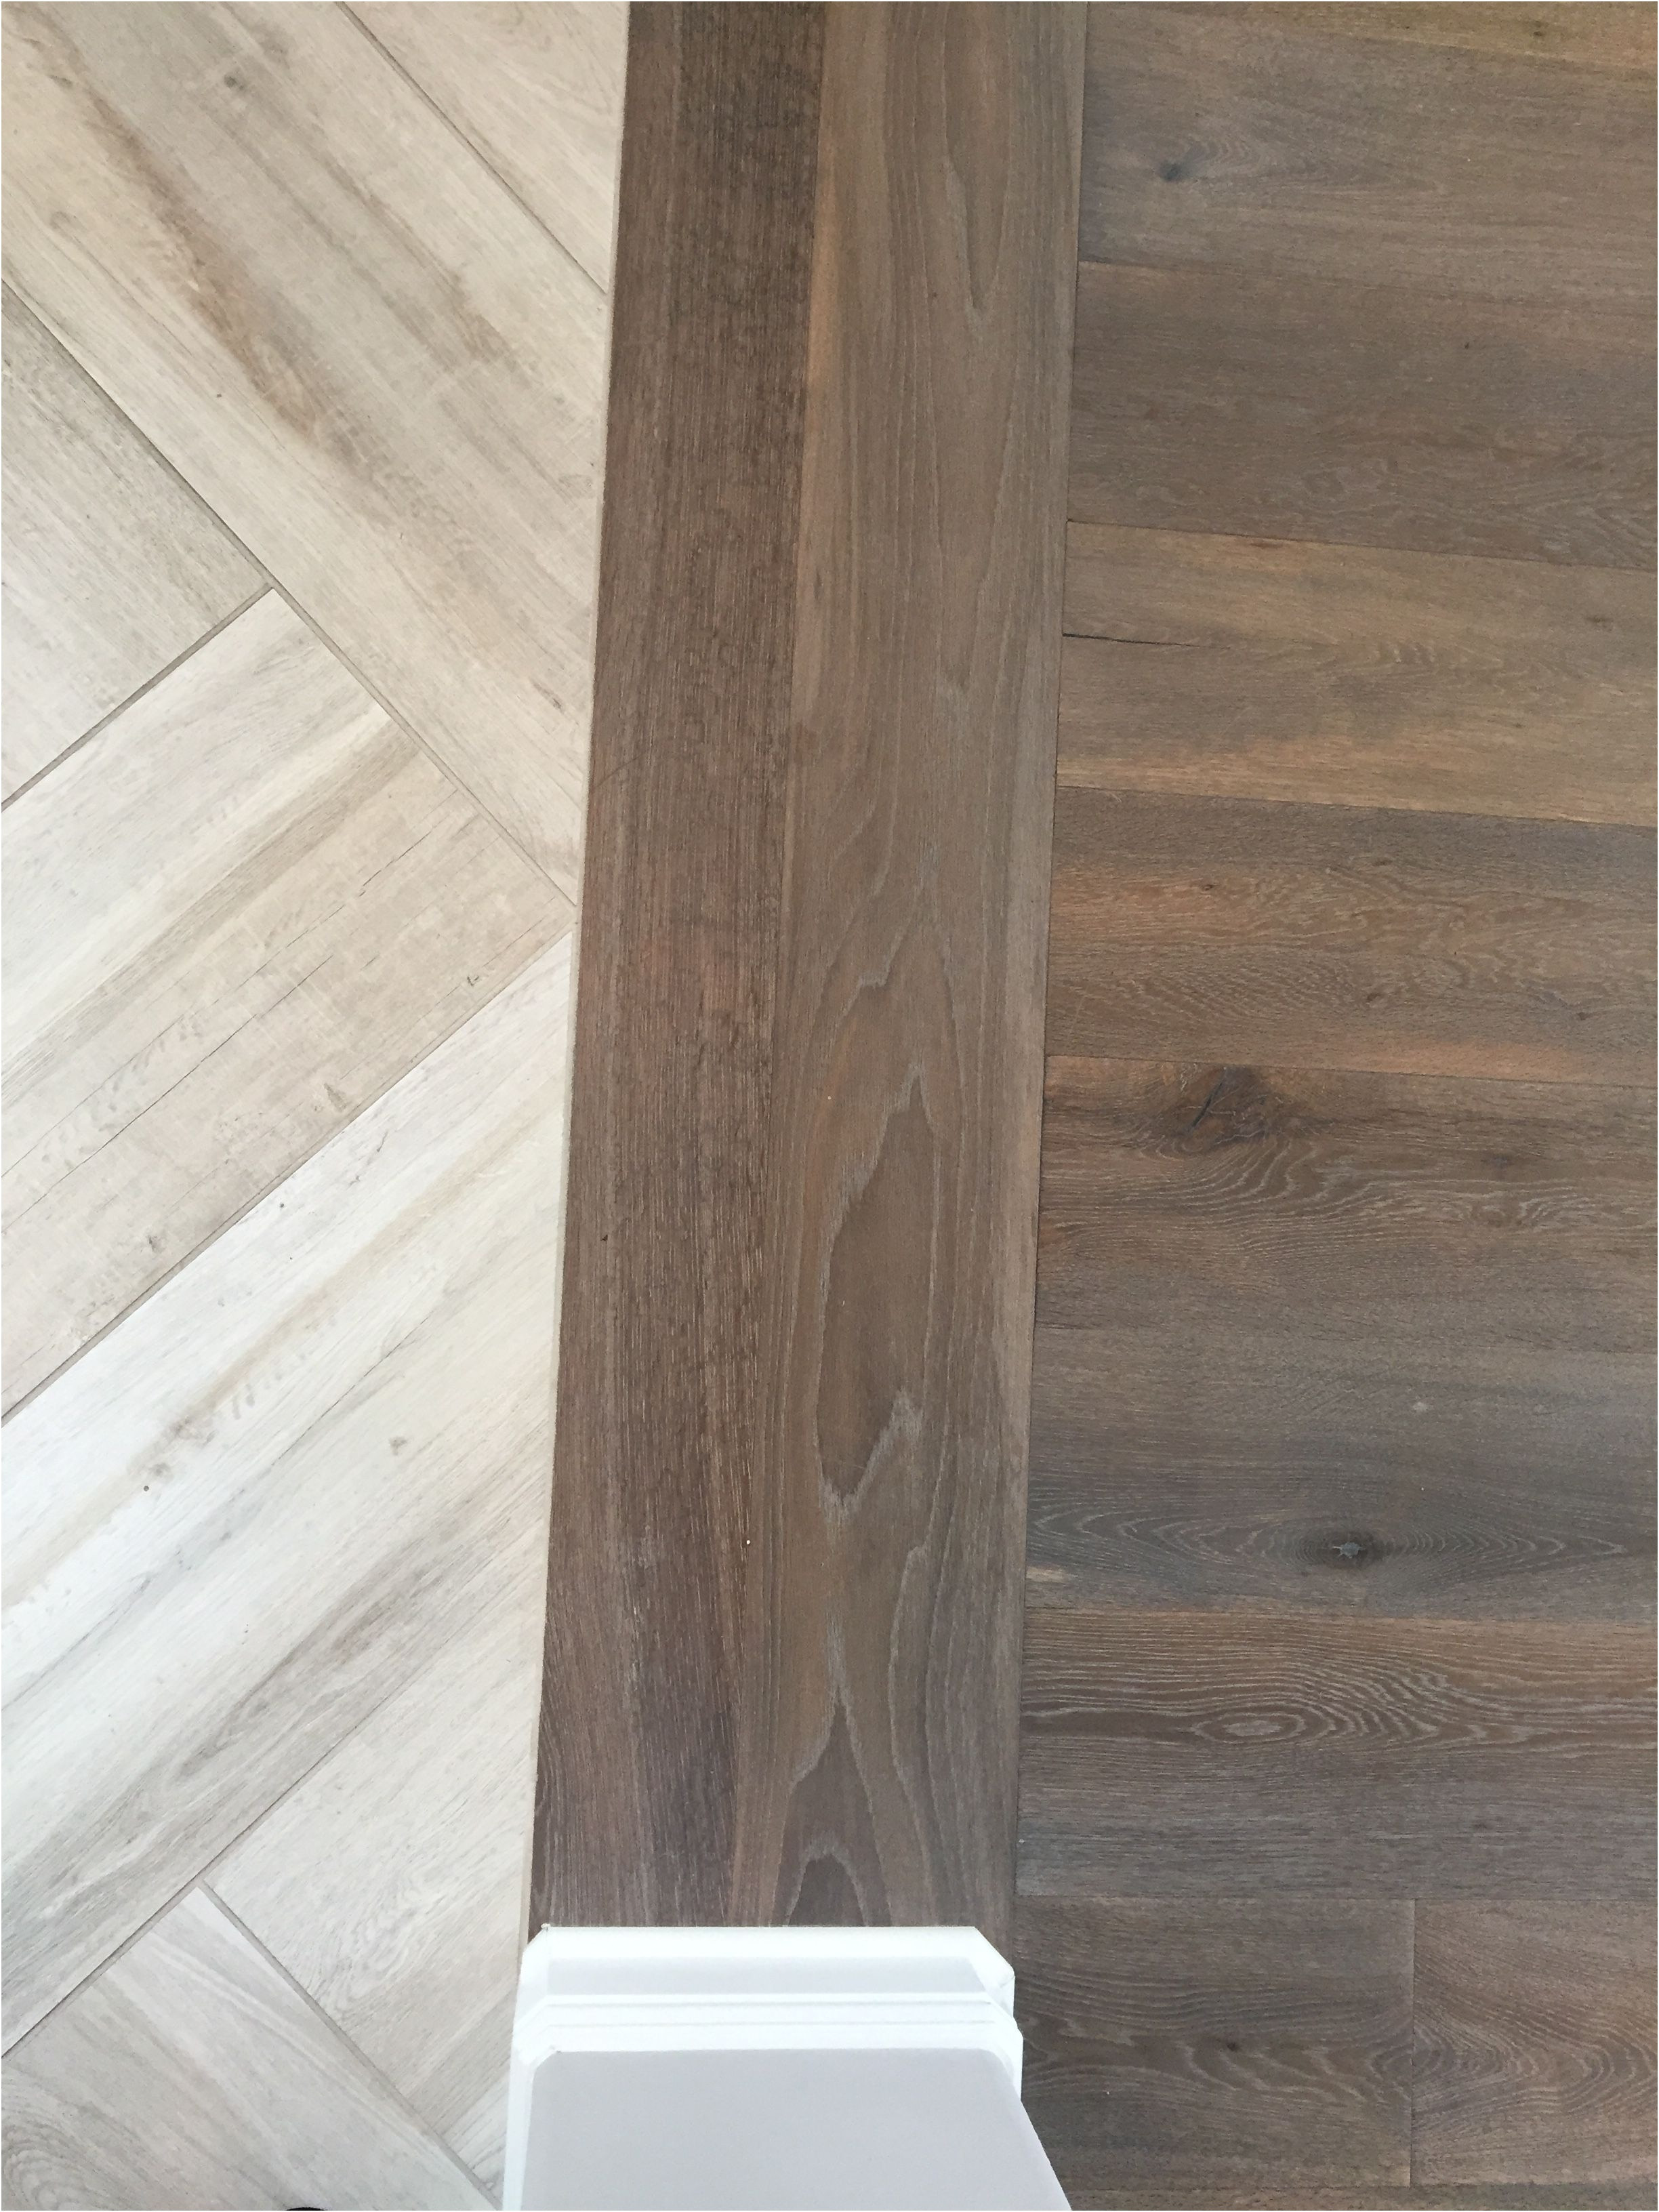 hardwood floor refinishing winston salem nc of how to install hardwood flooring around railings photographies regarding how to install hardwood flooring around railings images floor transition laminate to herringbone tile pattern of